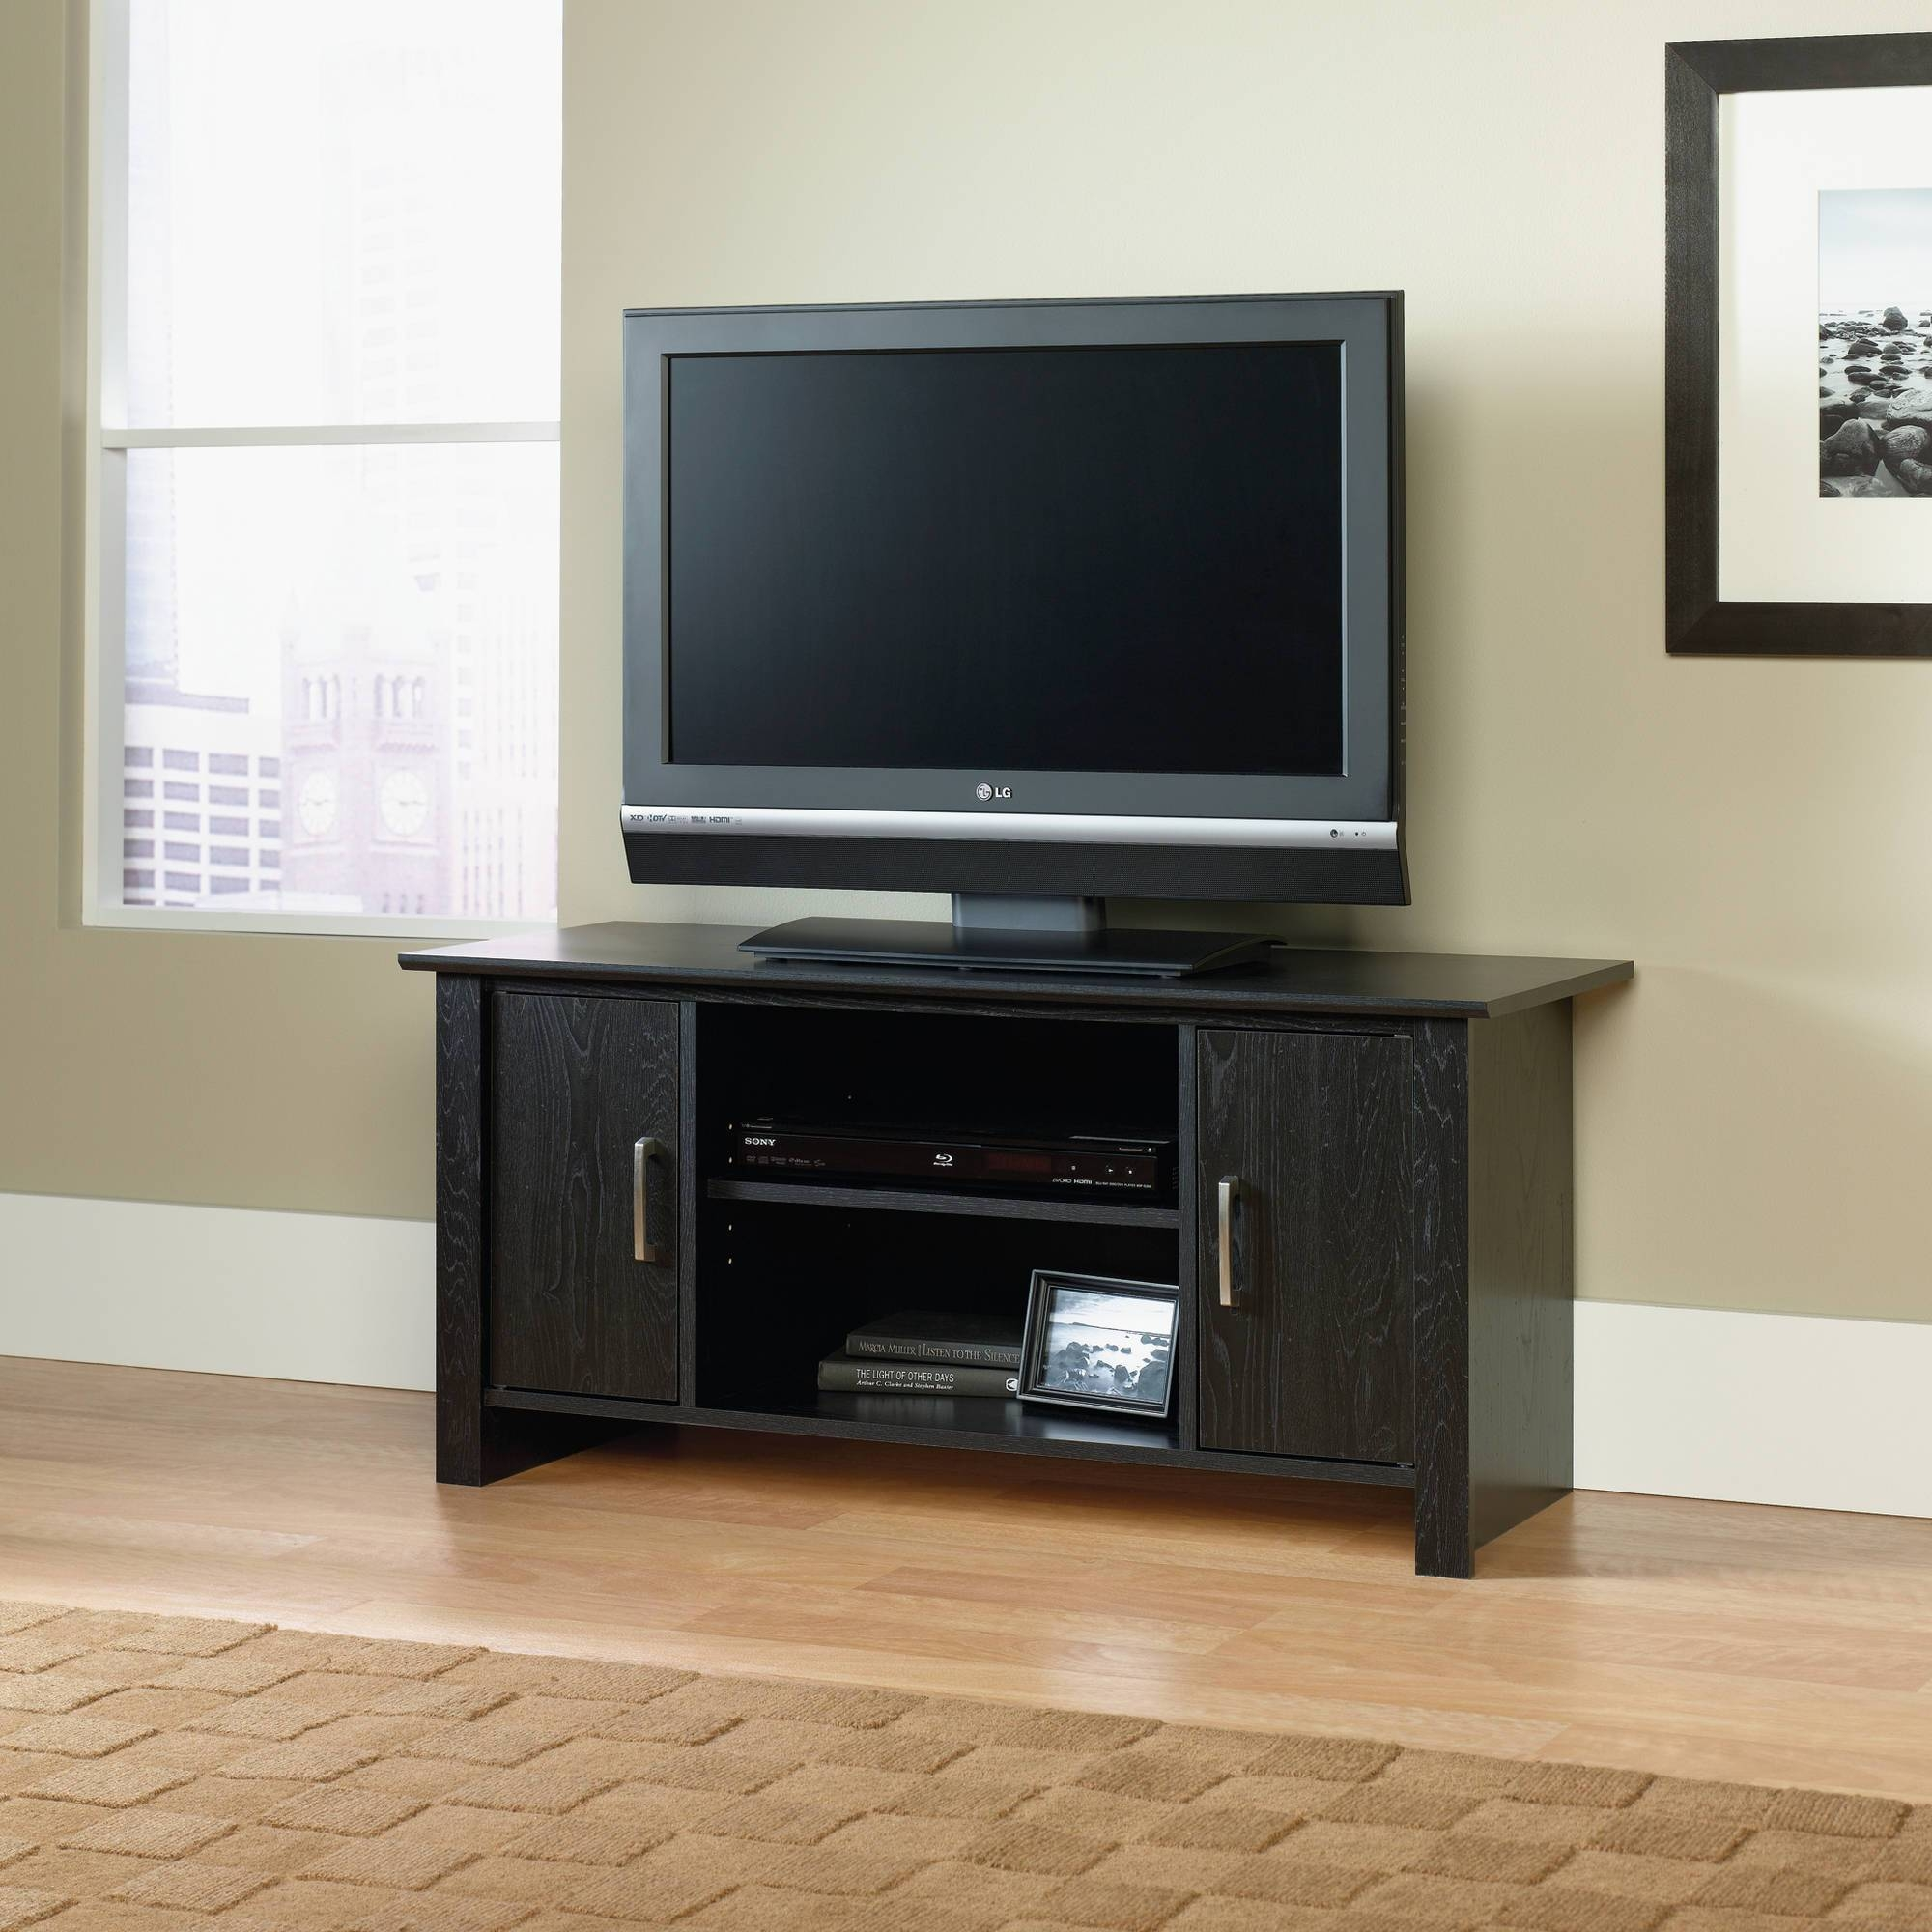 Tv Tables Big Tv Stand: 15 Ideas Of Modern Tv Stands For 60 Inch Tvs